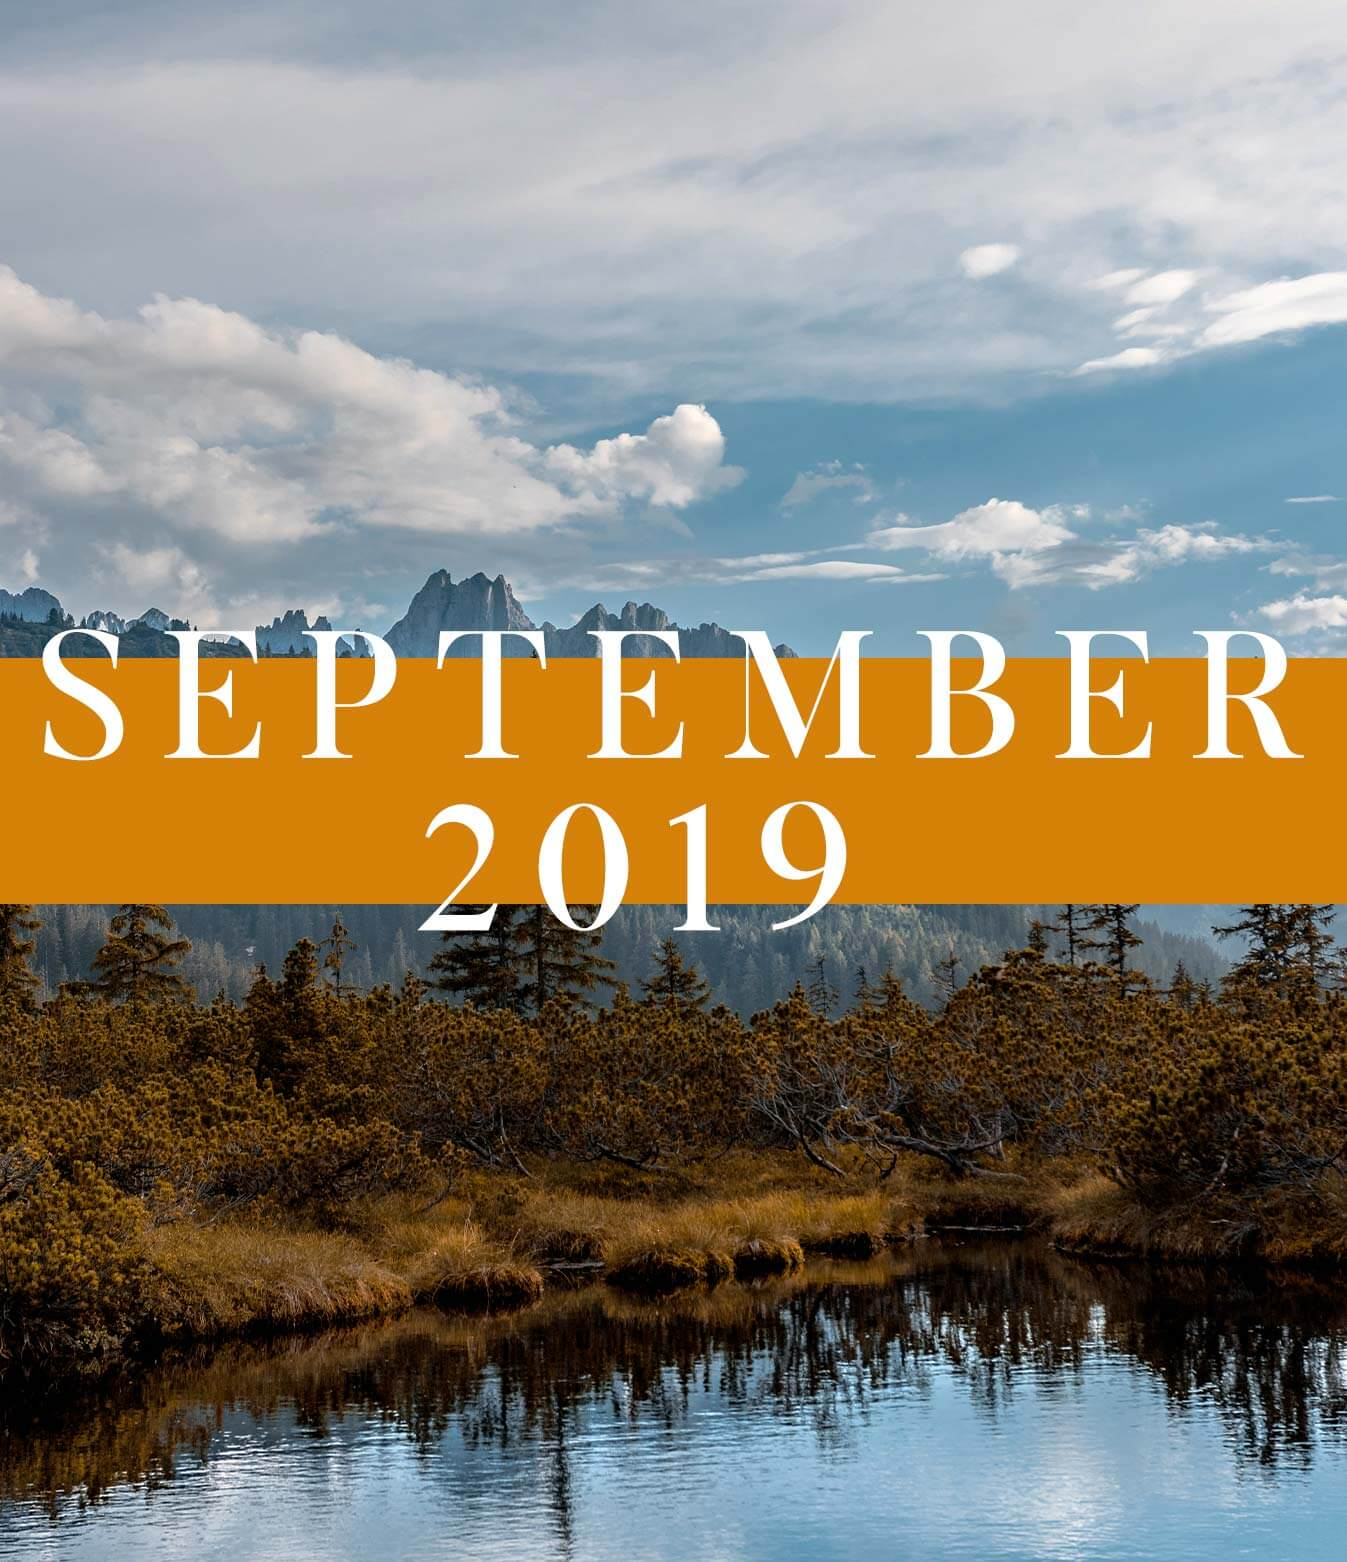 September 2019 sermon series at Pearce Church in Rochester, NY